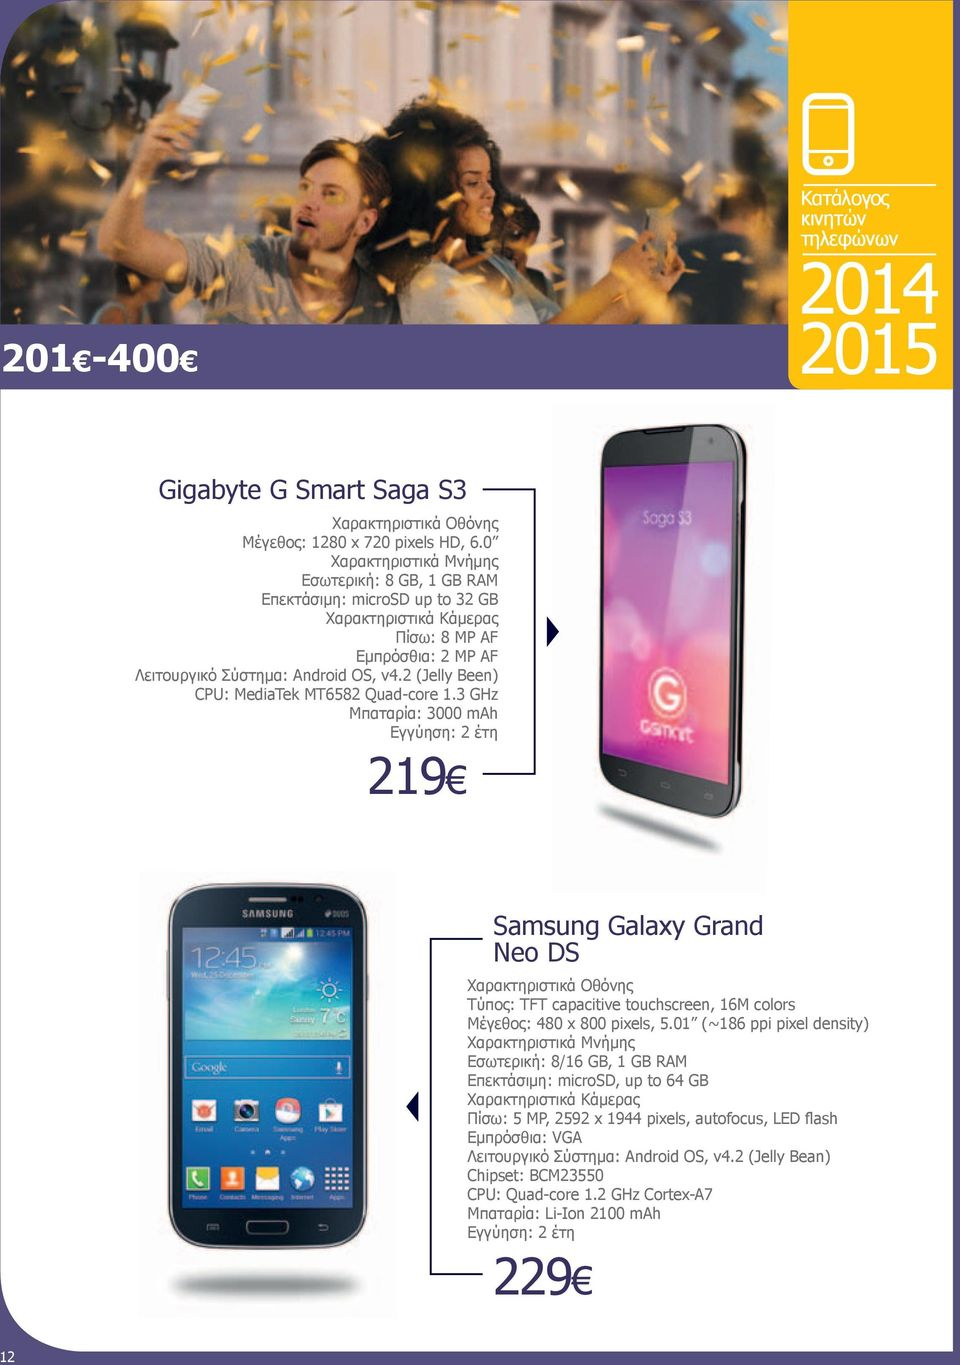 3 GHz Μπαταρία: 3000 mah 219 Samsung Galaxy Grand Neo DS Τύπος: TFT capacitive touchscreen, 16M colors Μέγεθος: 480 x 800 pixels, 5.